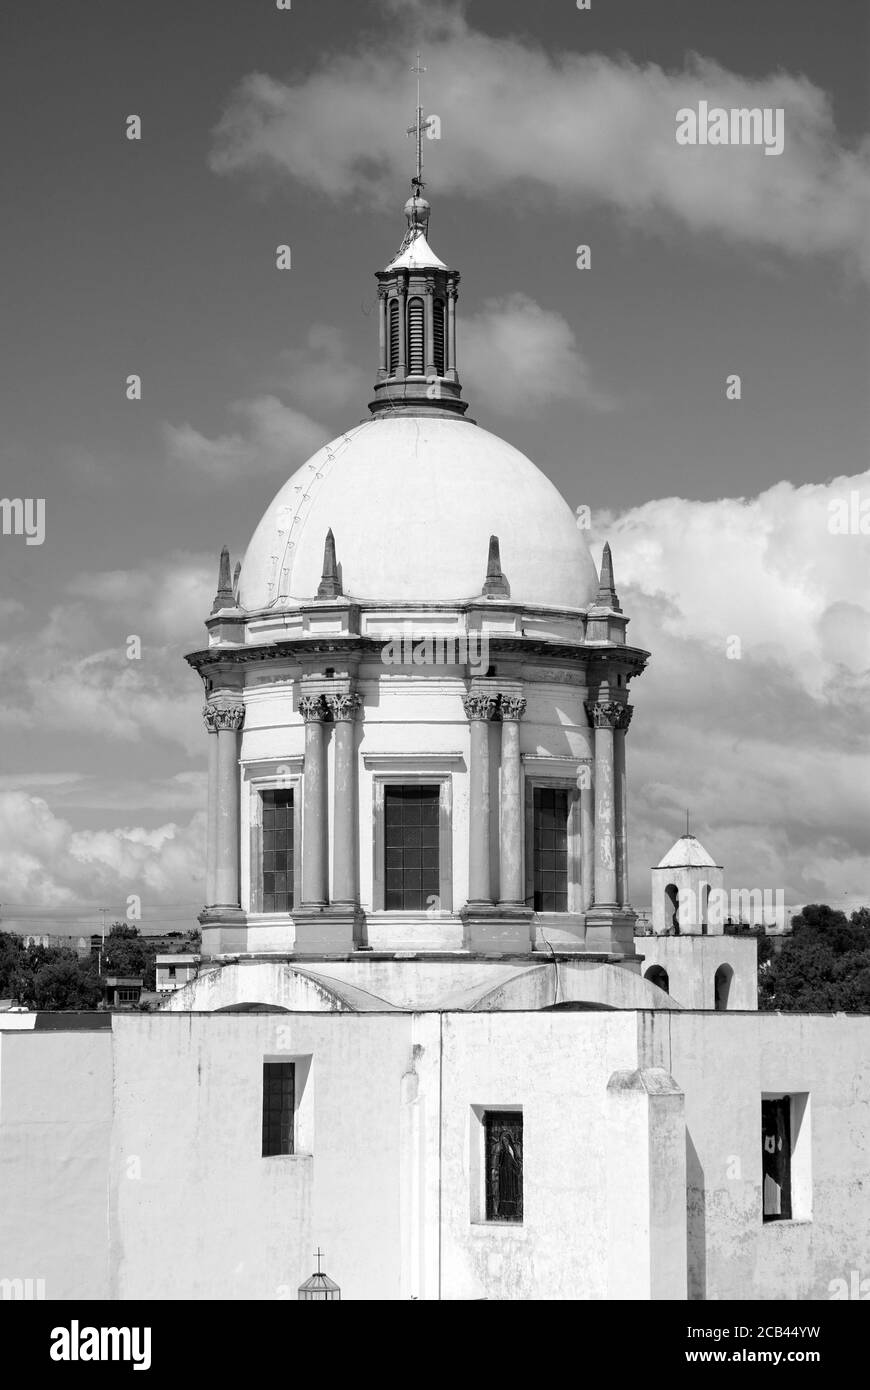 dome-of-the-parroquia-san-pedro-church-i